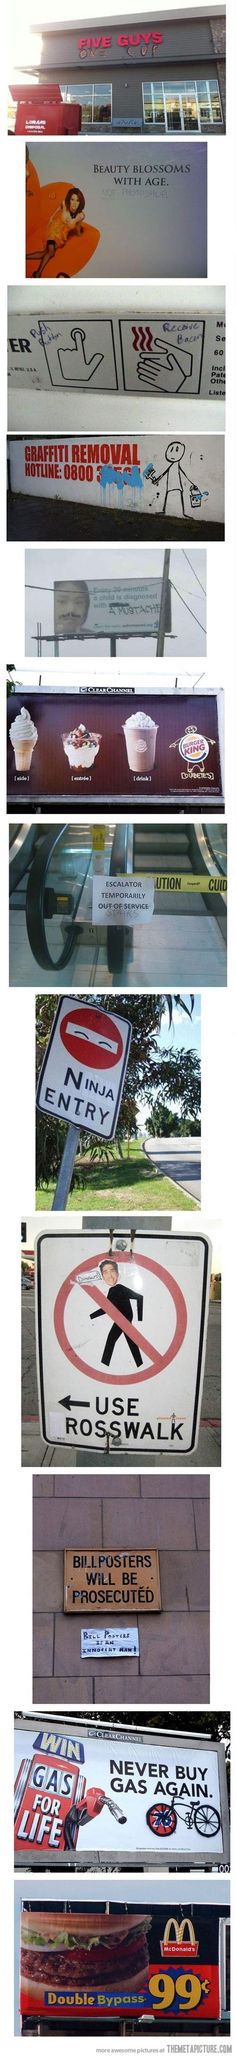 Signs improved by graffiti…